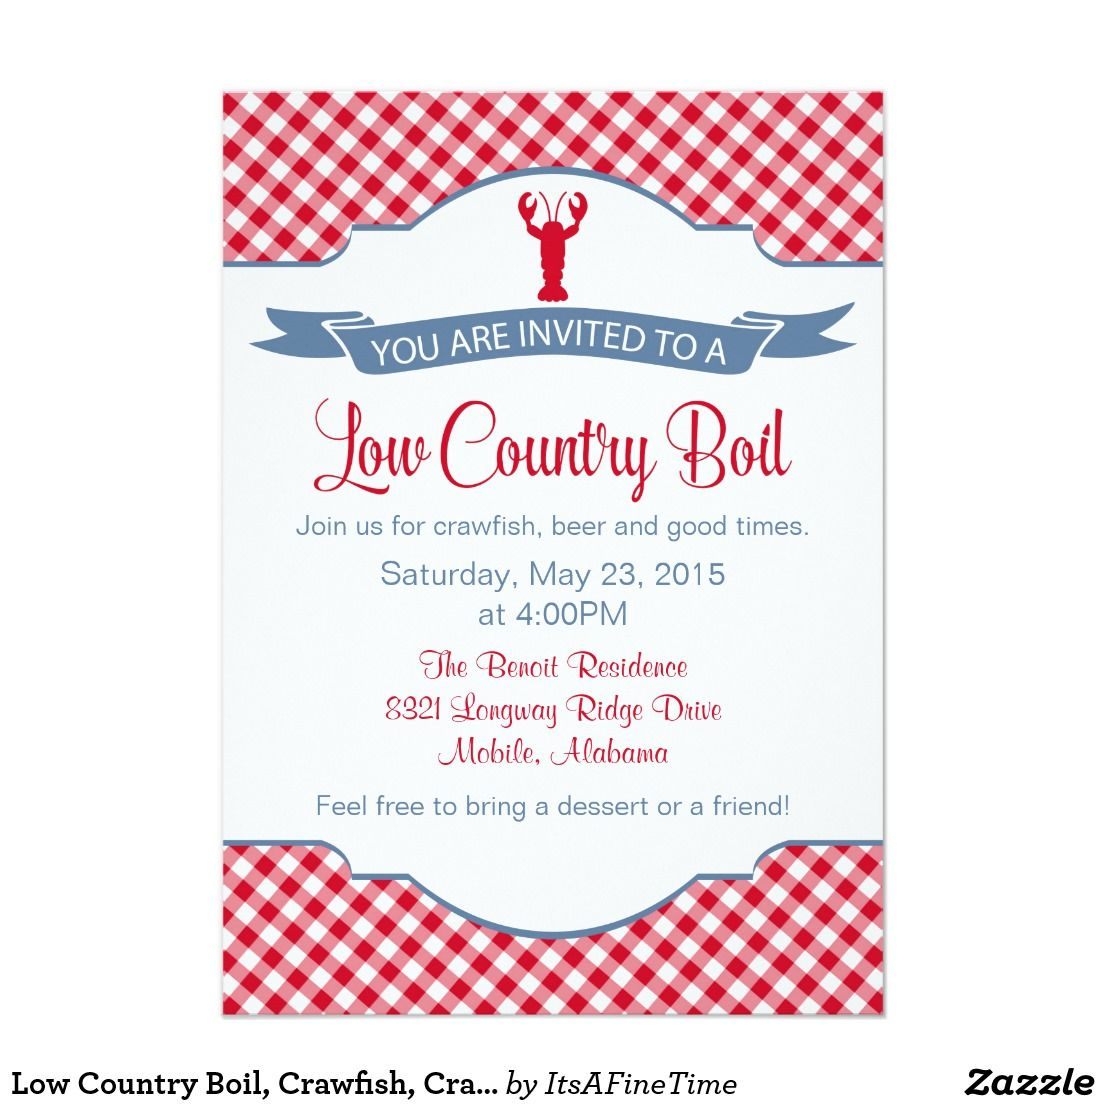 Low Country Boil, Crawfish, Crab BBQ Invitation